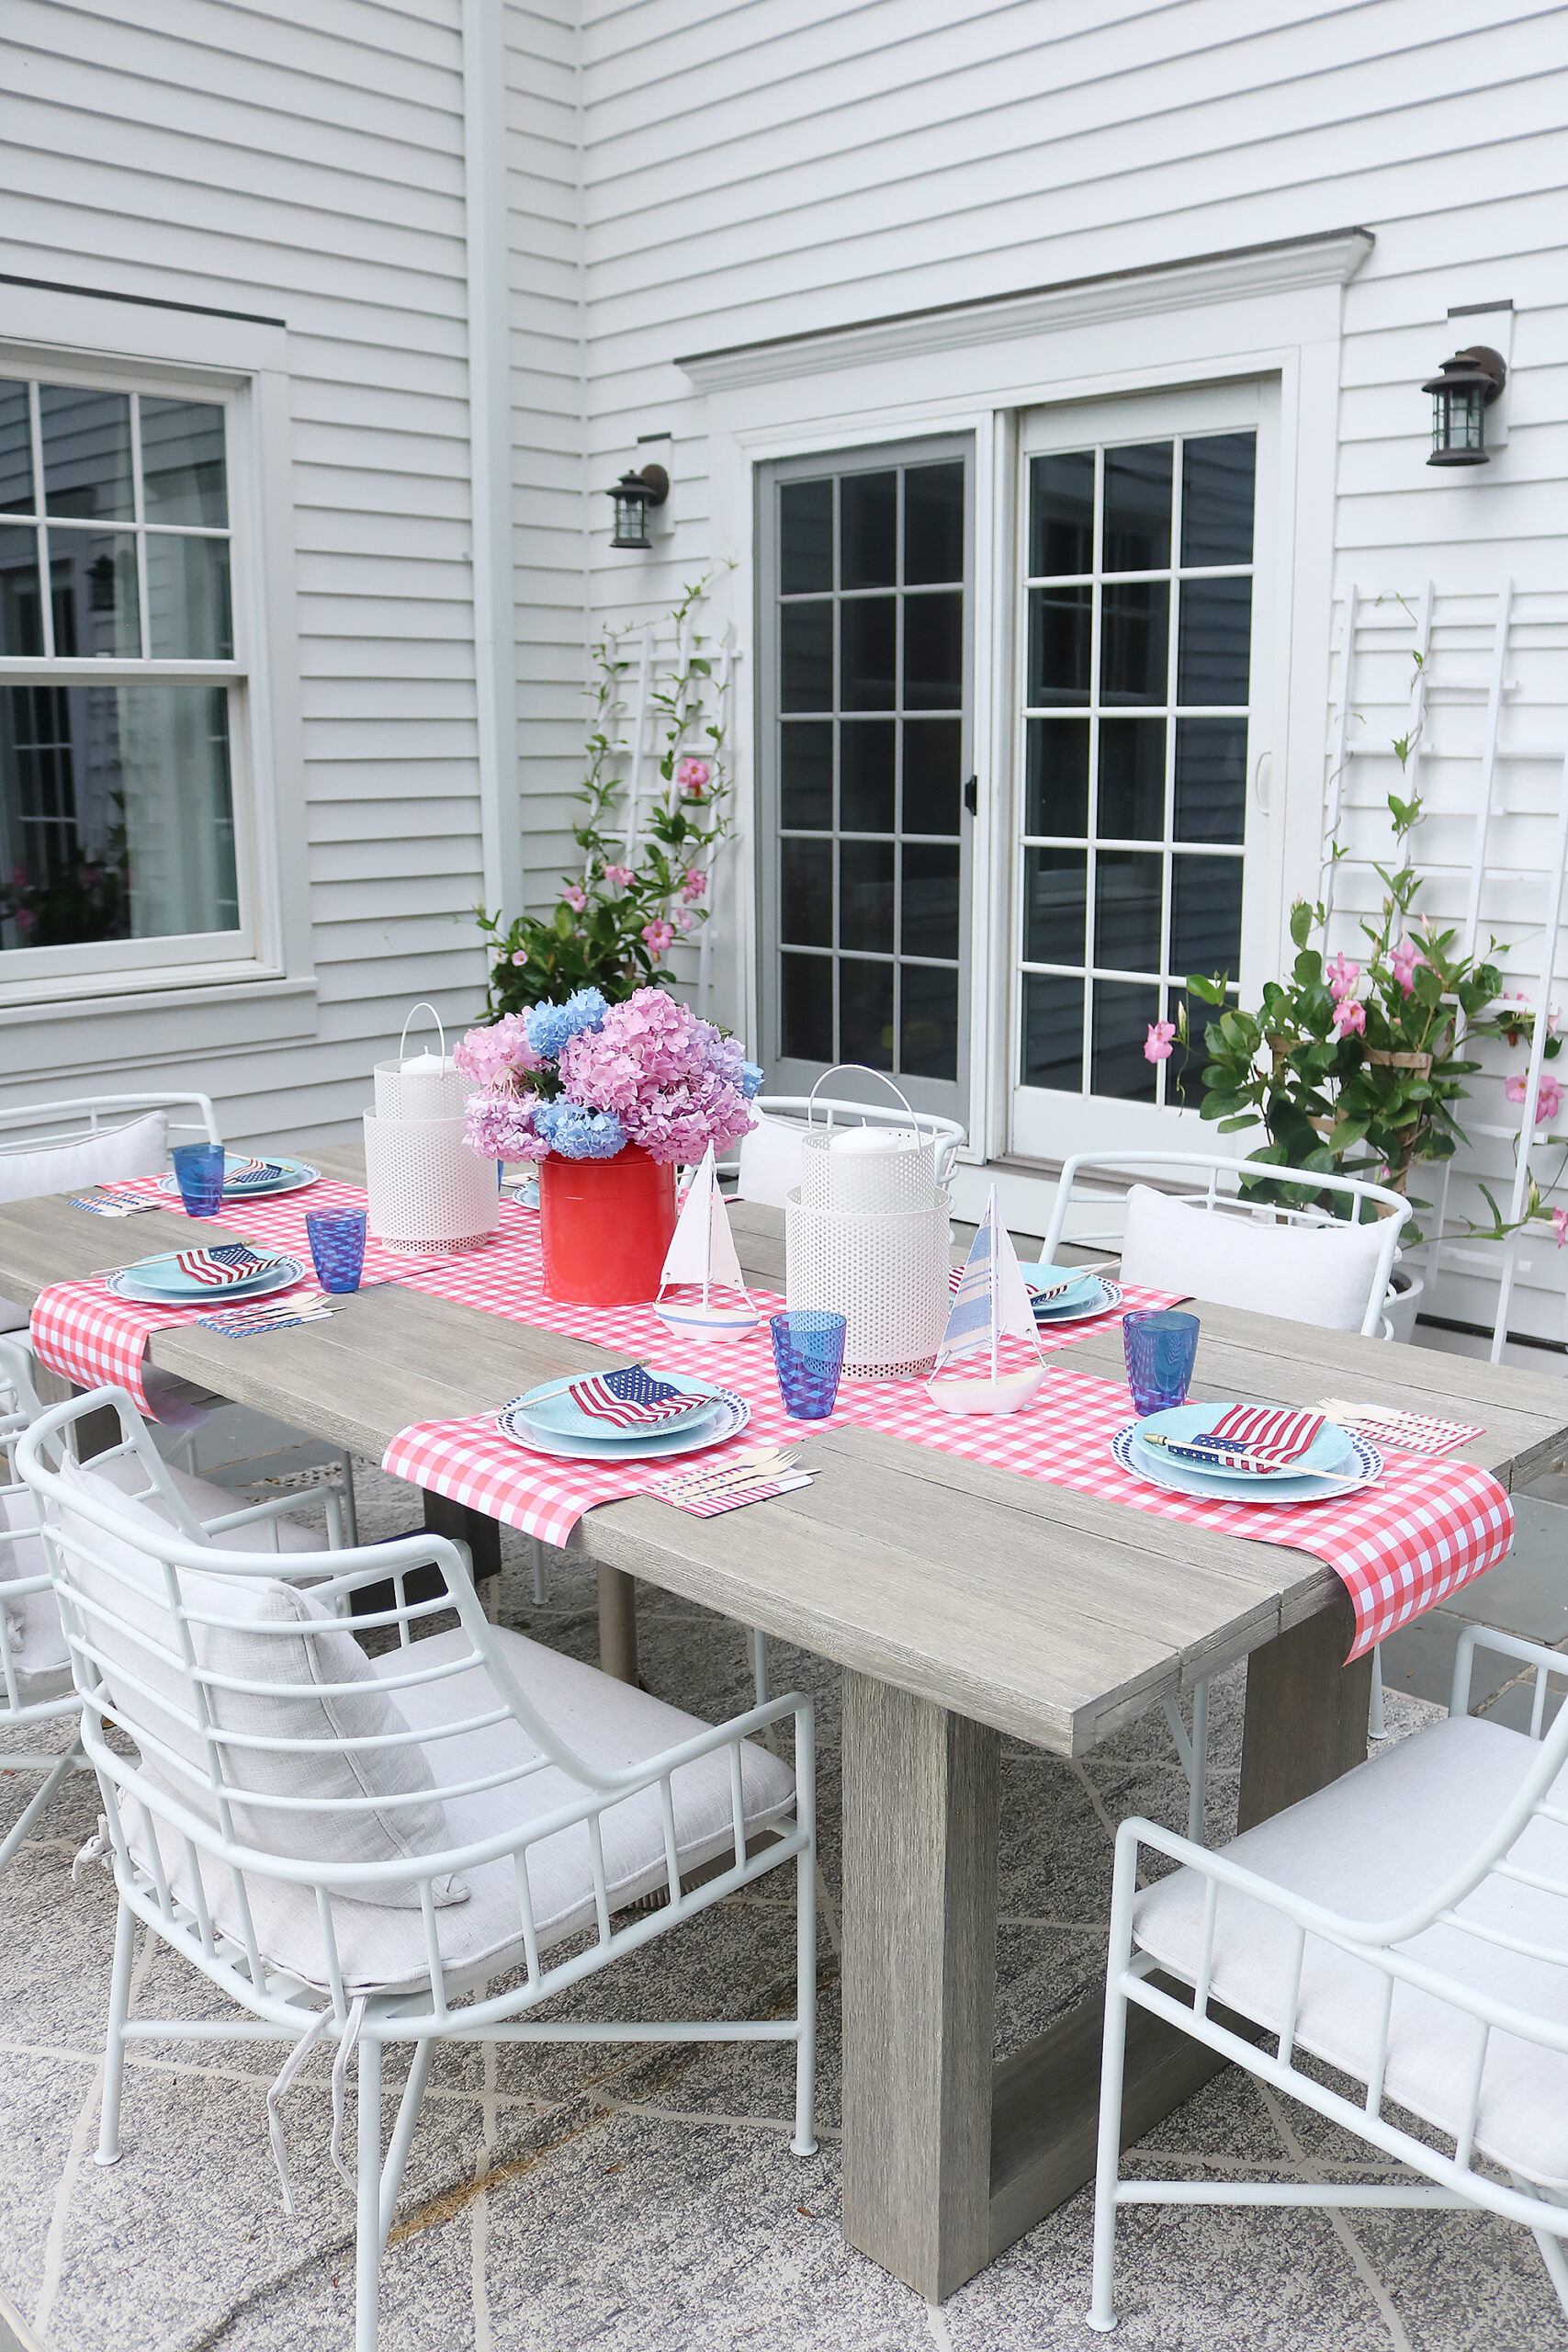 This year host a 4th of July backyard party and sharing simple budget-friendly decorating tips.  4th of july barbecue, 4th of july tablescape, minimal tablescape  || Darling Darleen Top CT Lifestyle Blogger #4thofjuly